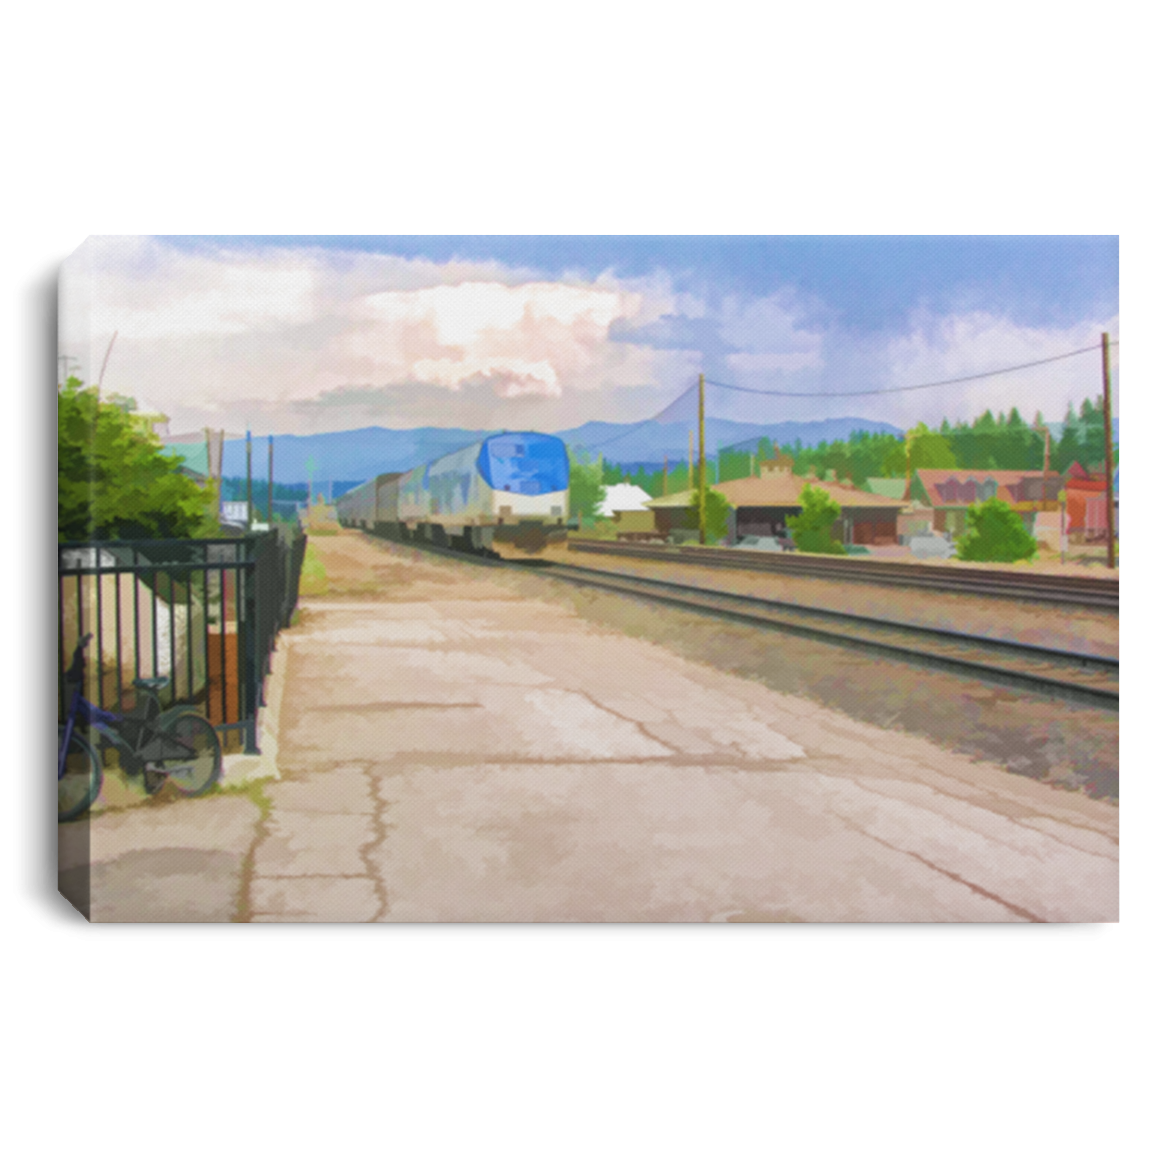 Canvas Print Train Station White / 12 x 8 Canvas Print (2536976089188)